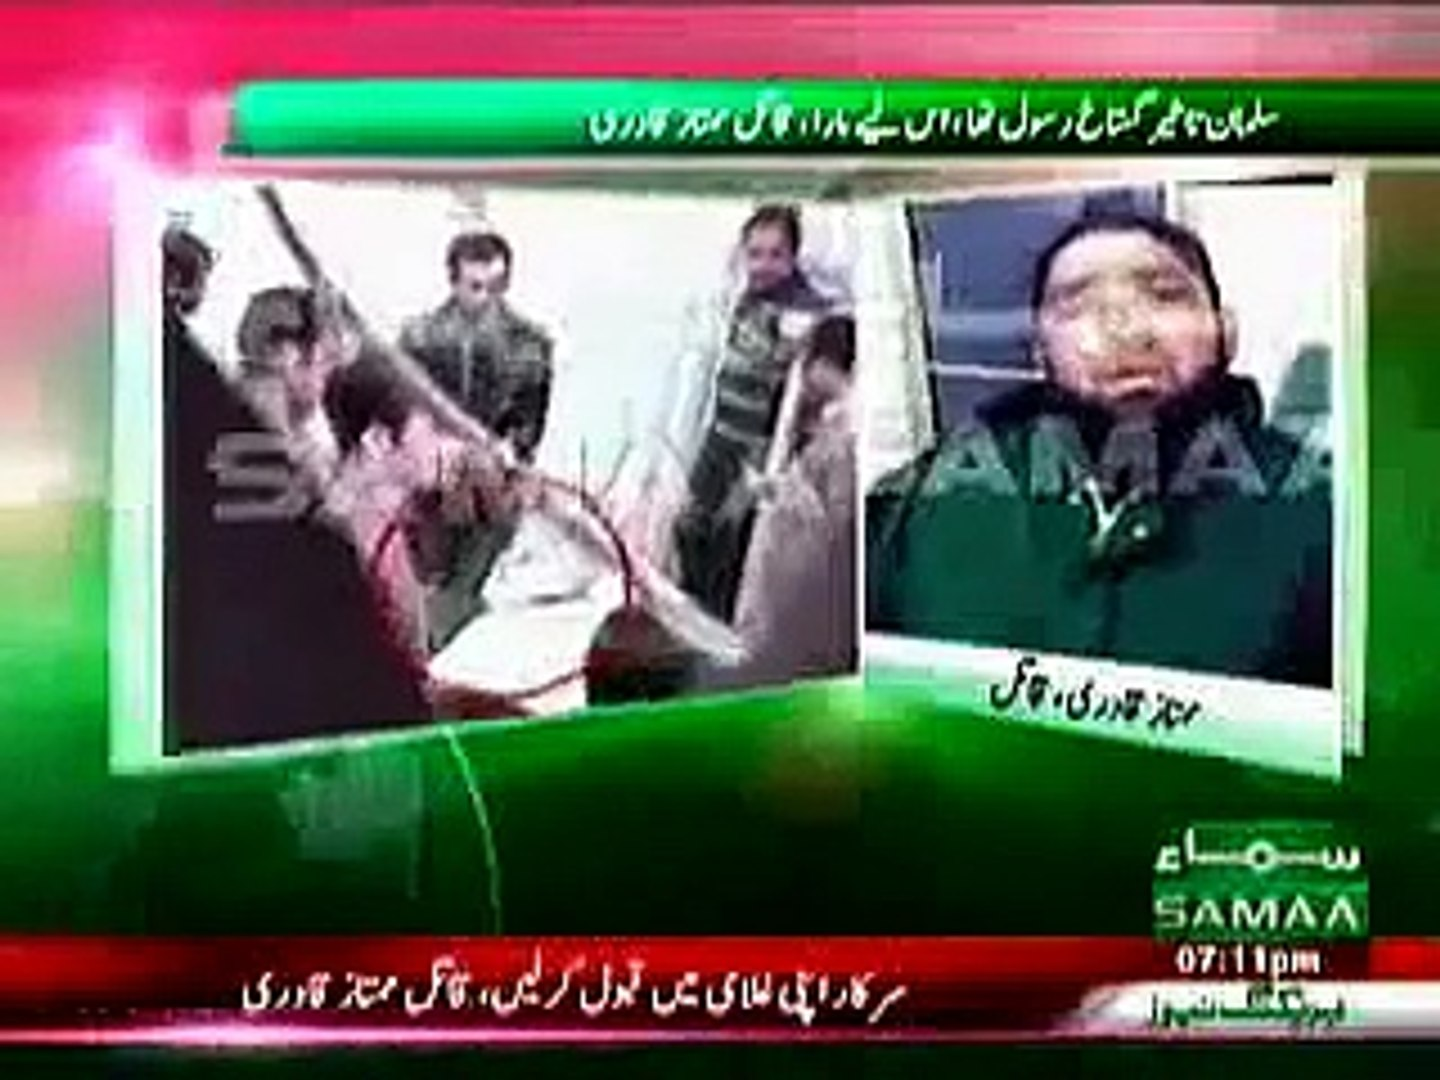 Why Mumtaz Qadri Killed Salman Taseer Mumtaz Qadri Revealing Unseen Video top songs best songs new s